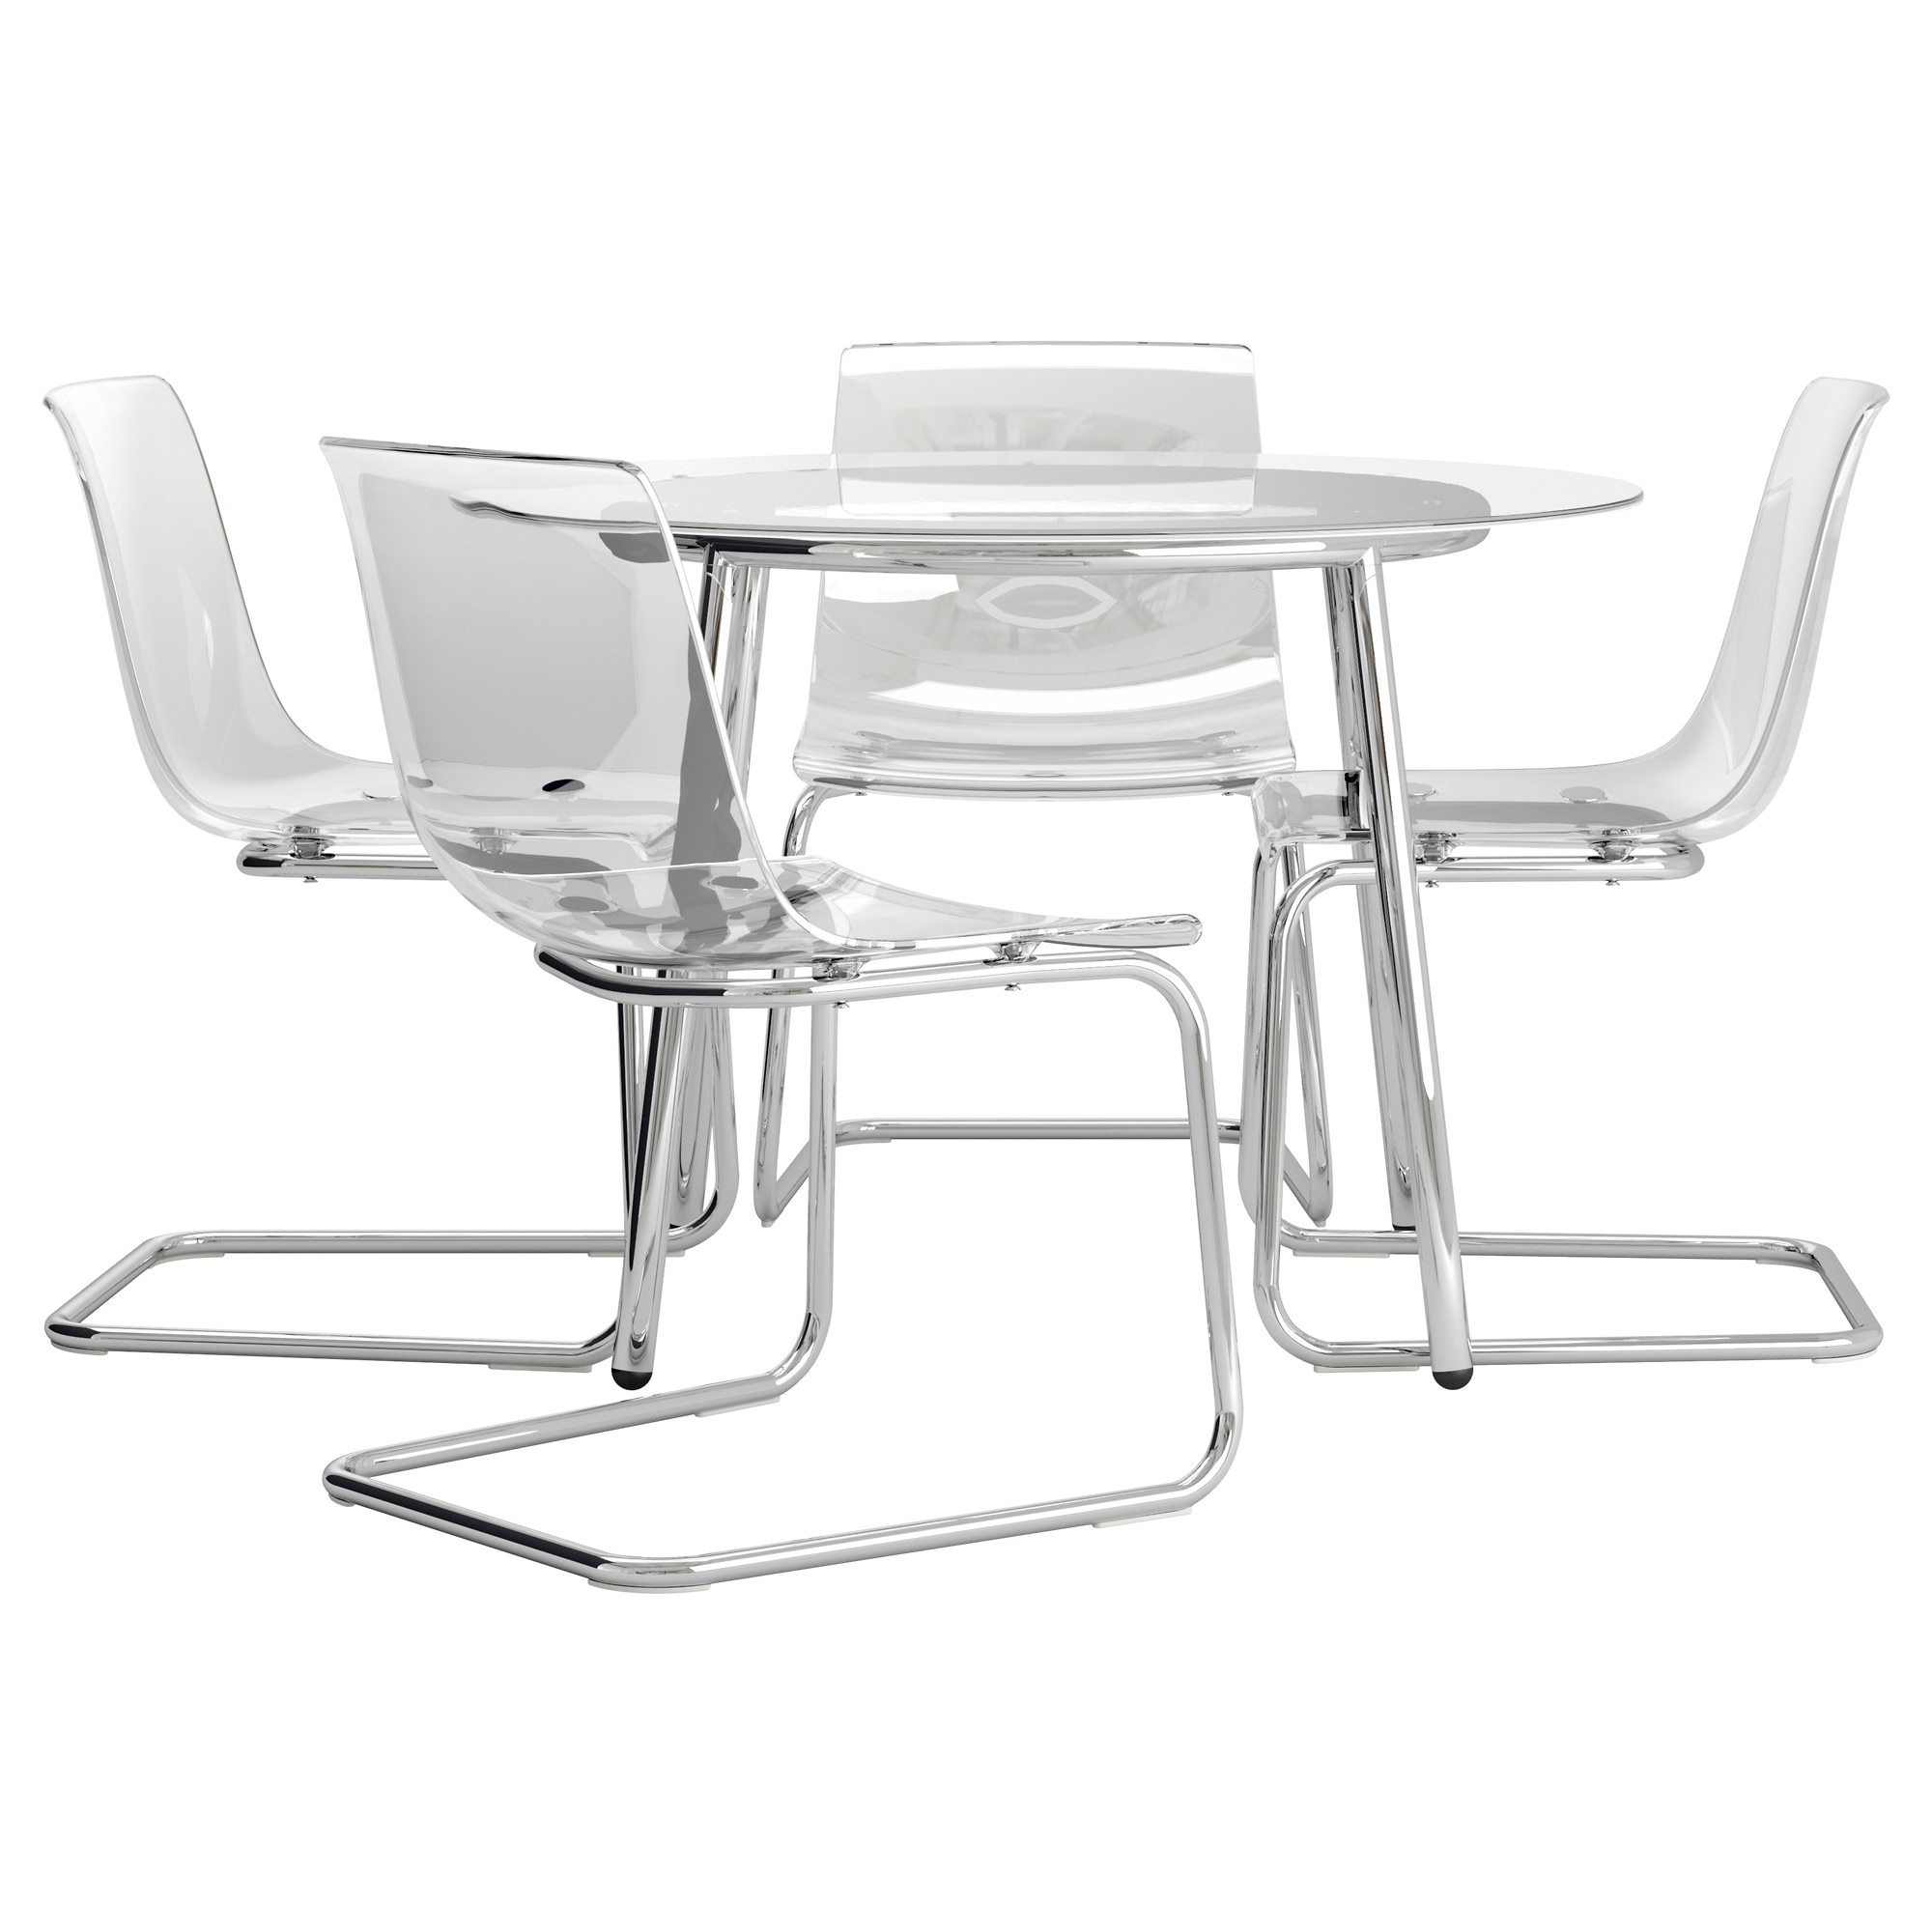 SALMI TOBIAS Table And 4 Chairs IKEA